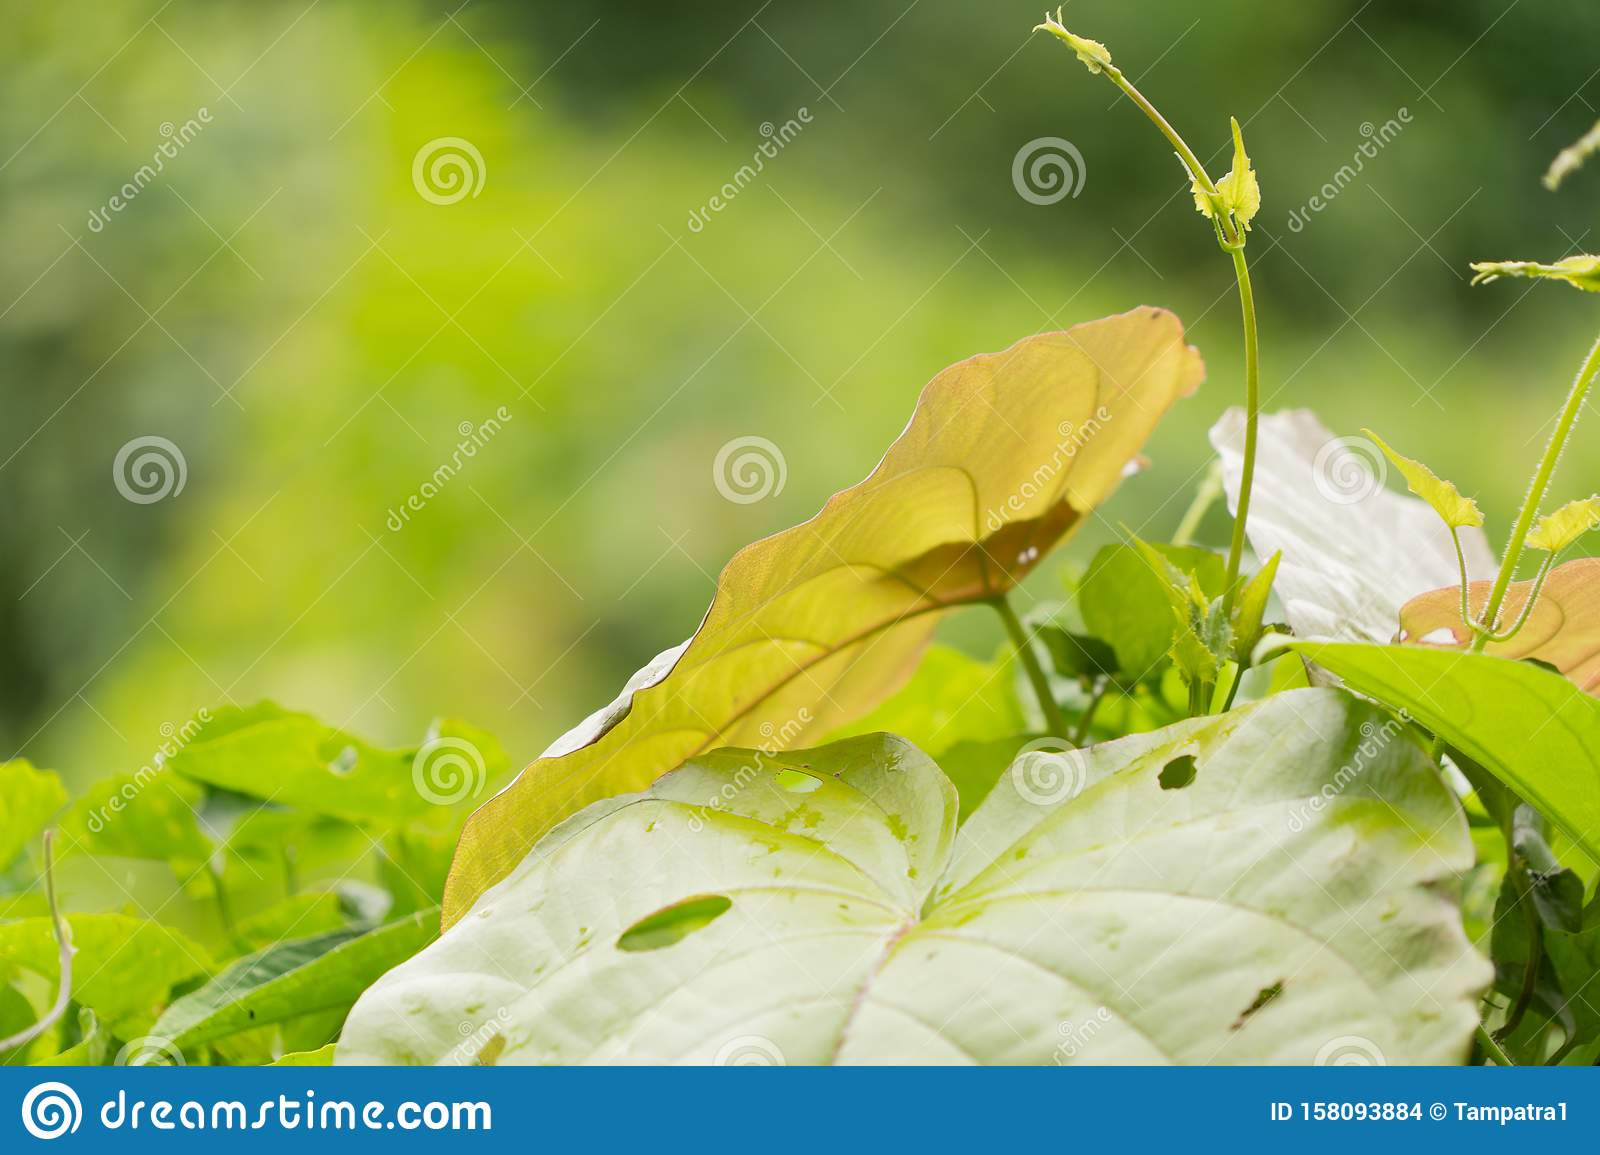 Green plant leaves with copy space in tropical forest in summer season, Thailand. Natural landscape background